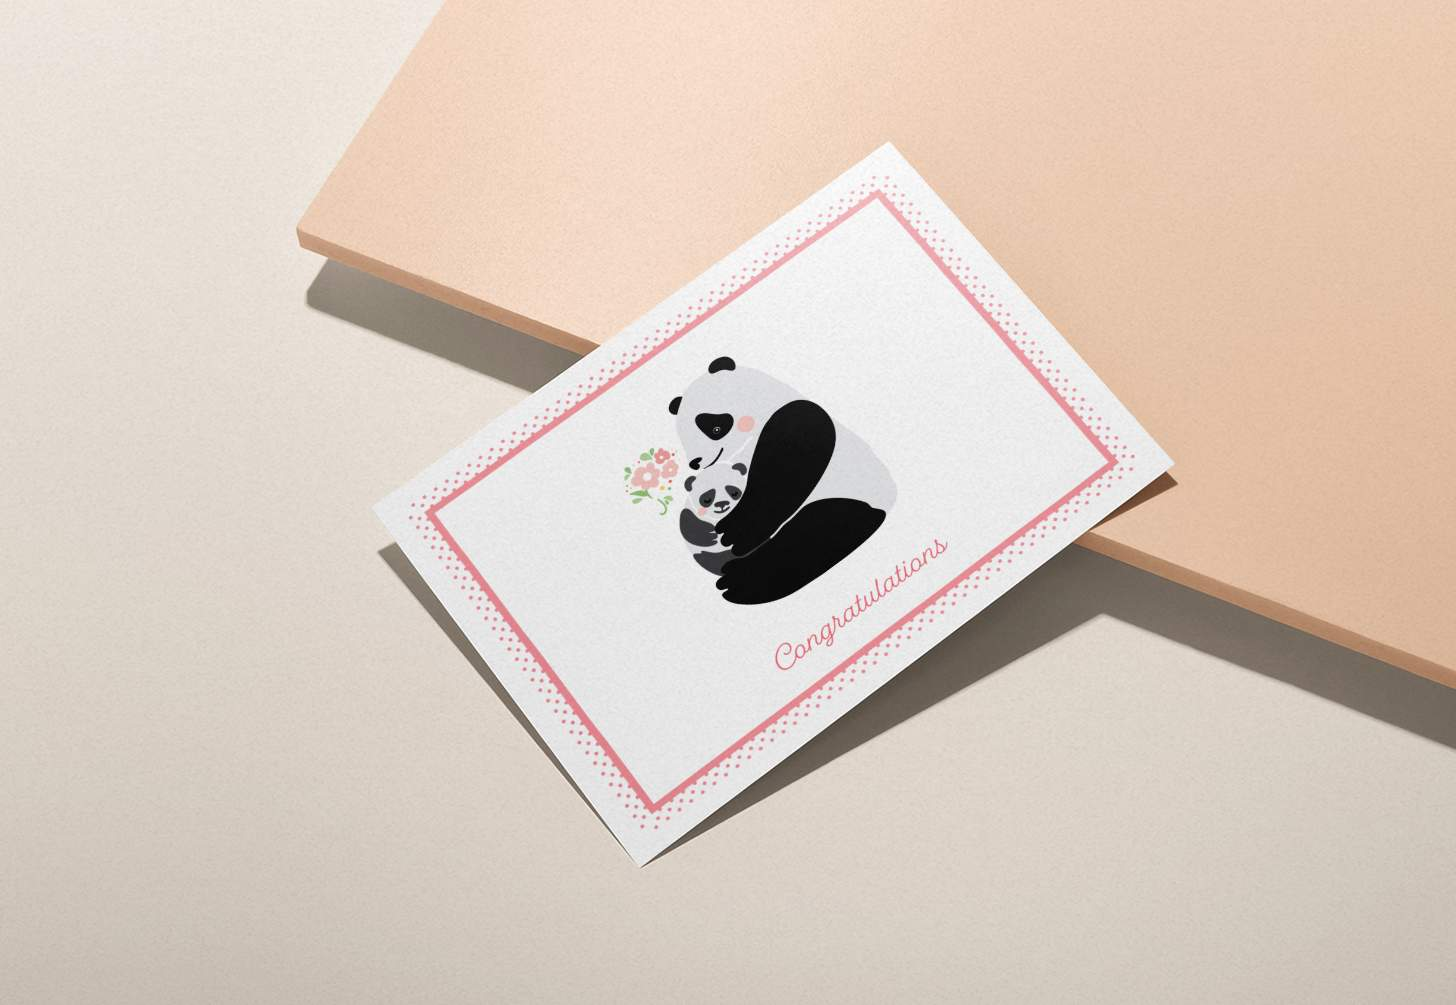 Mother and baby panda design on a pink background